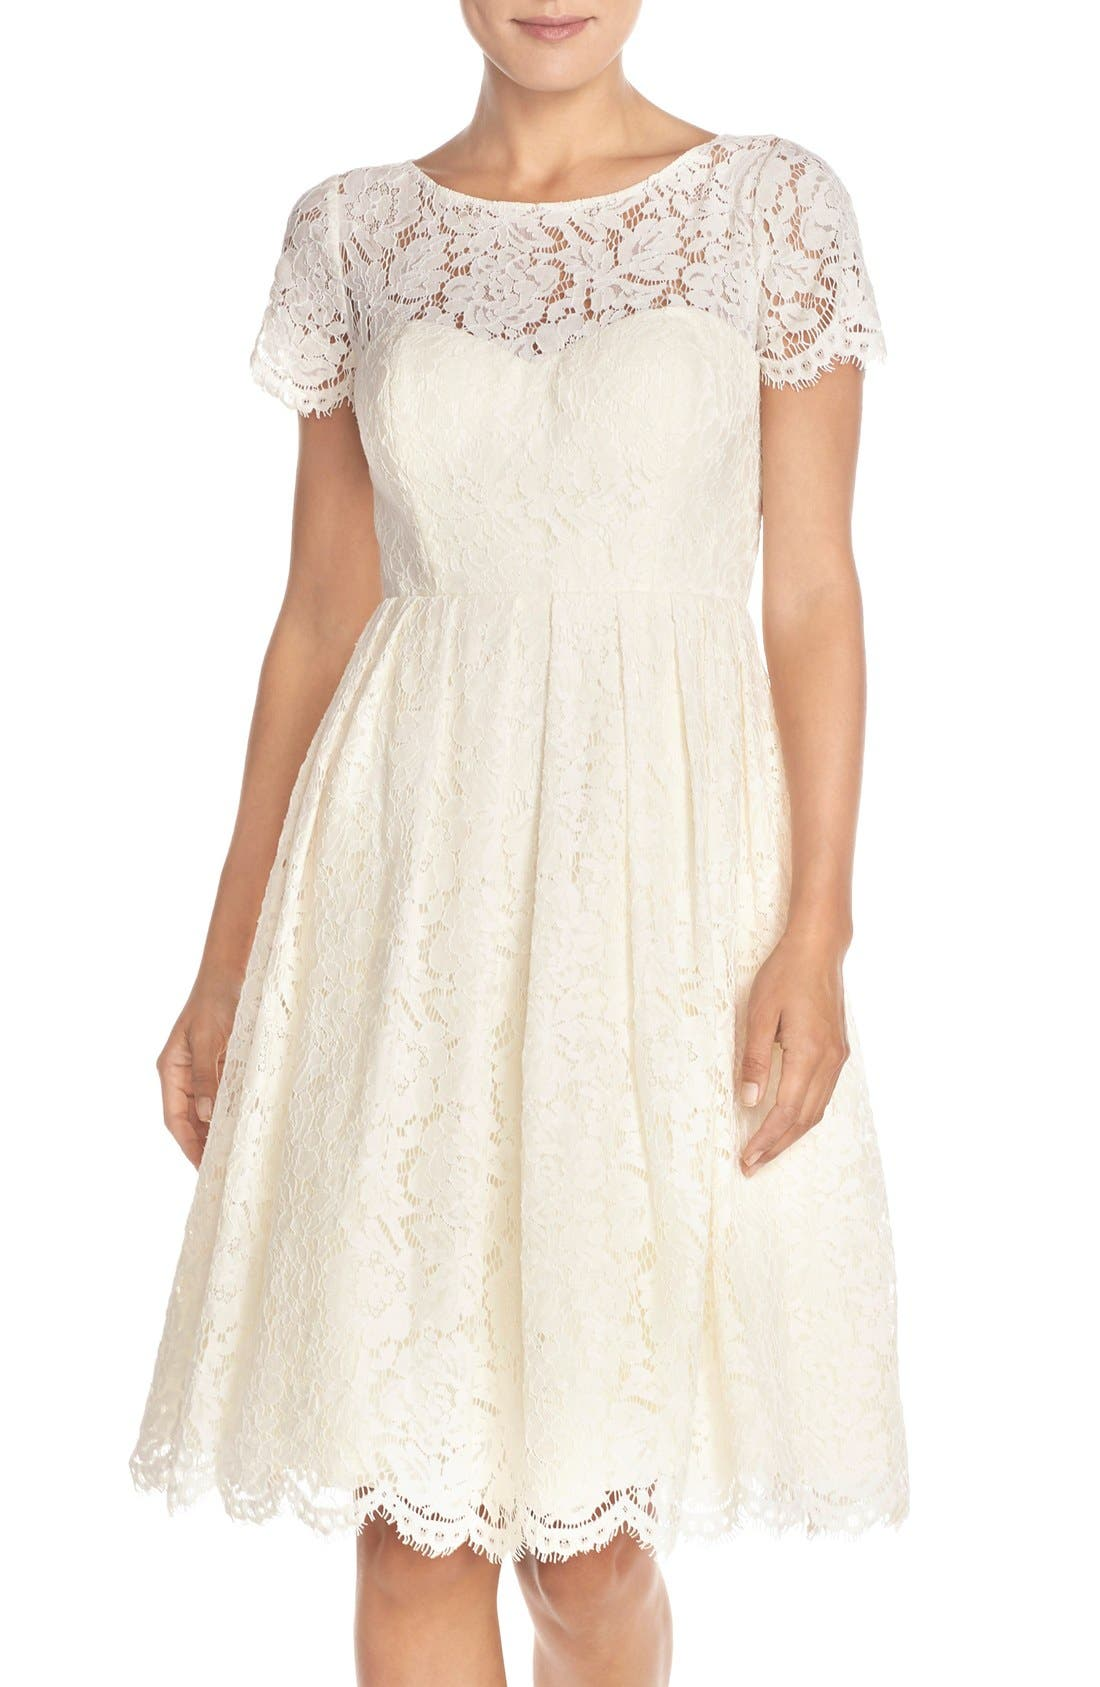 Cadence Keyhole Back Lace Fit & Flare Dress,                             Main thumbnail 1, color,                             905